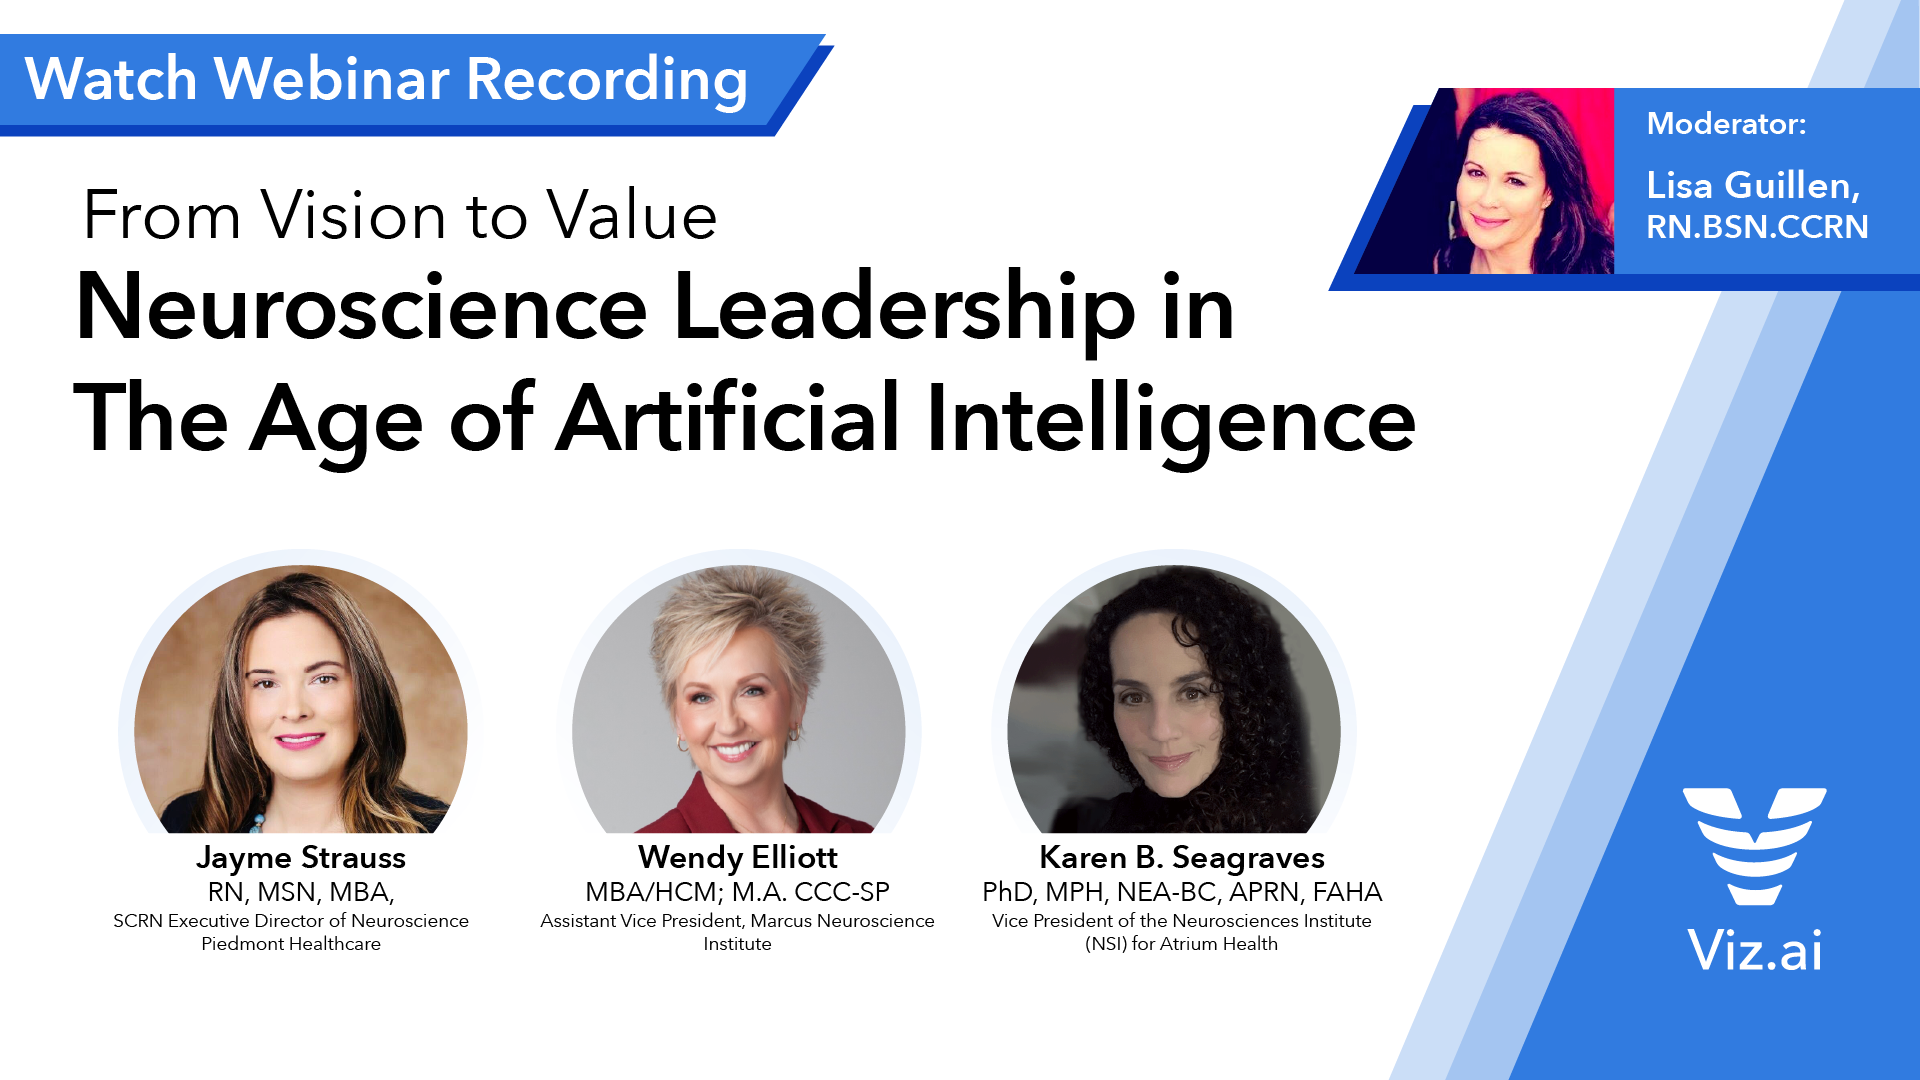 Neuroscience Leadership in the Age of Artificial Intelligence